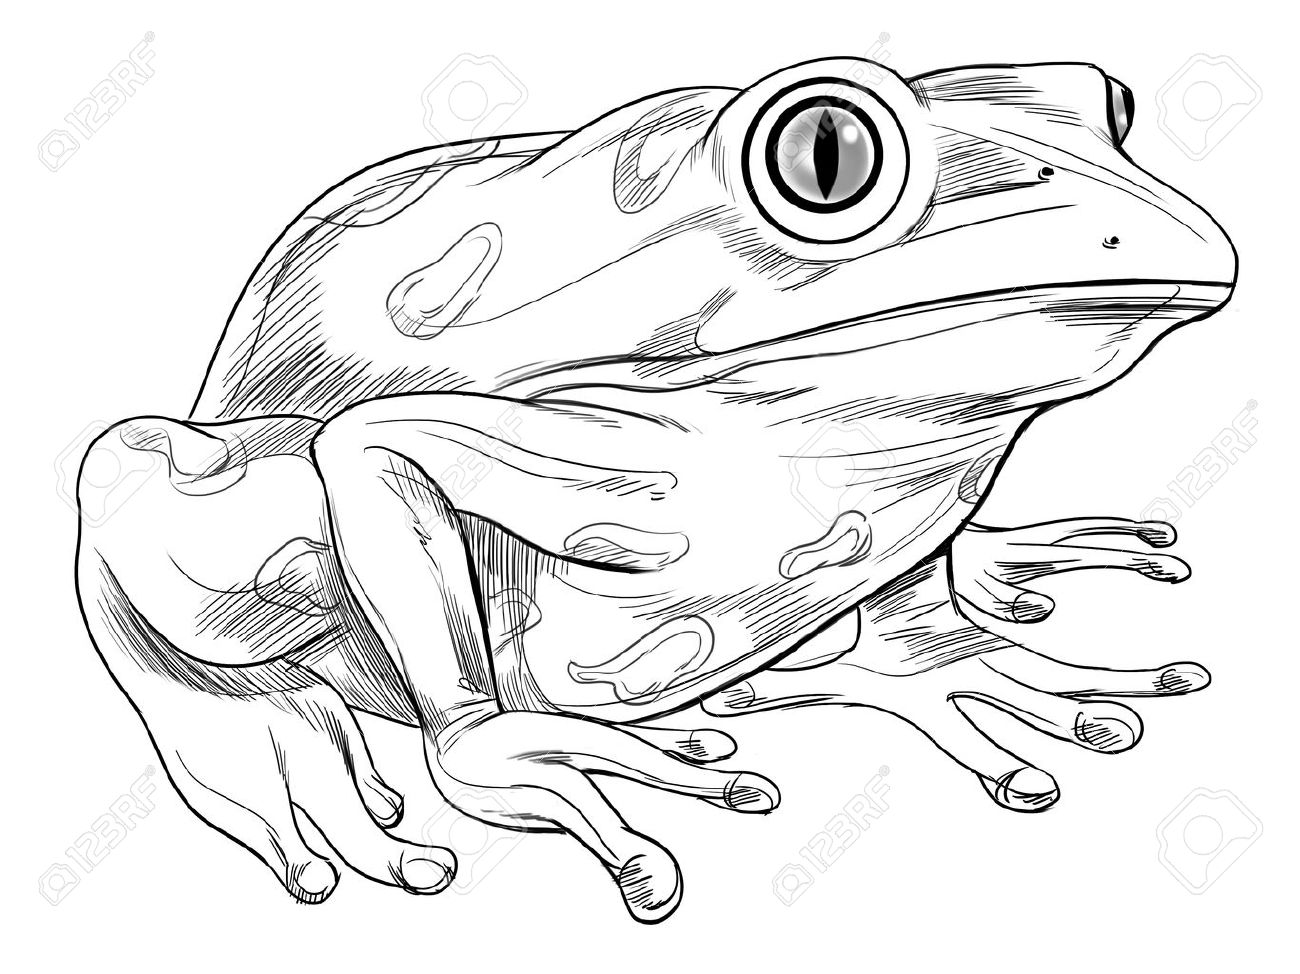 Black And White Sketch Of A Frog Stock Vector   16771568